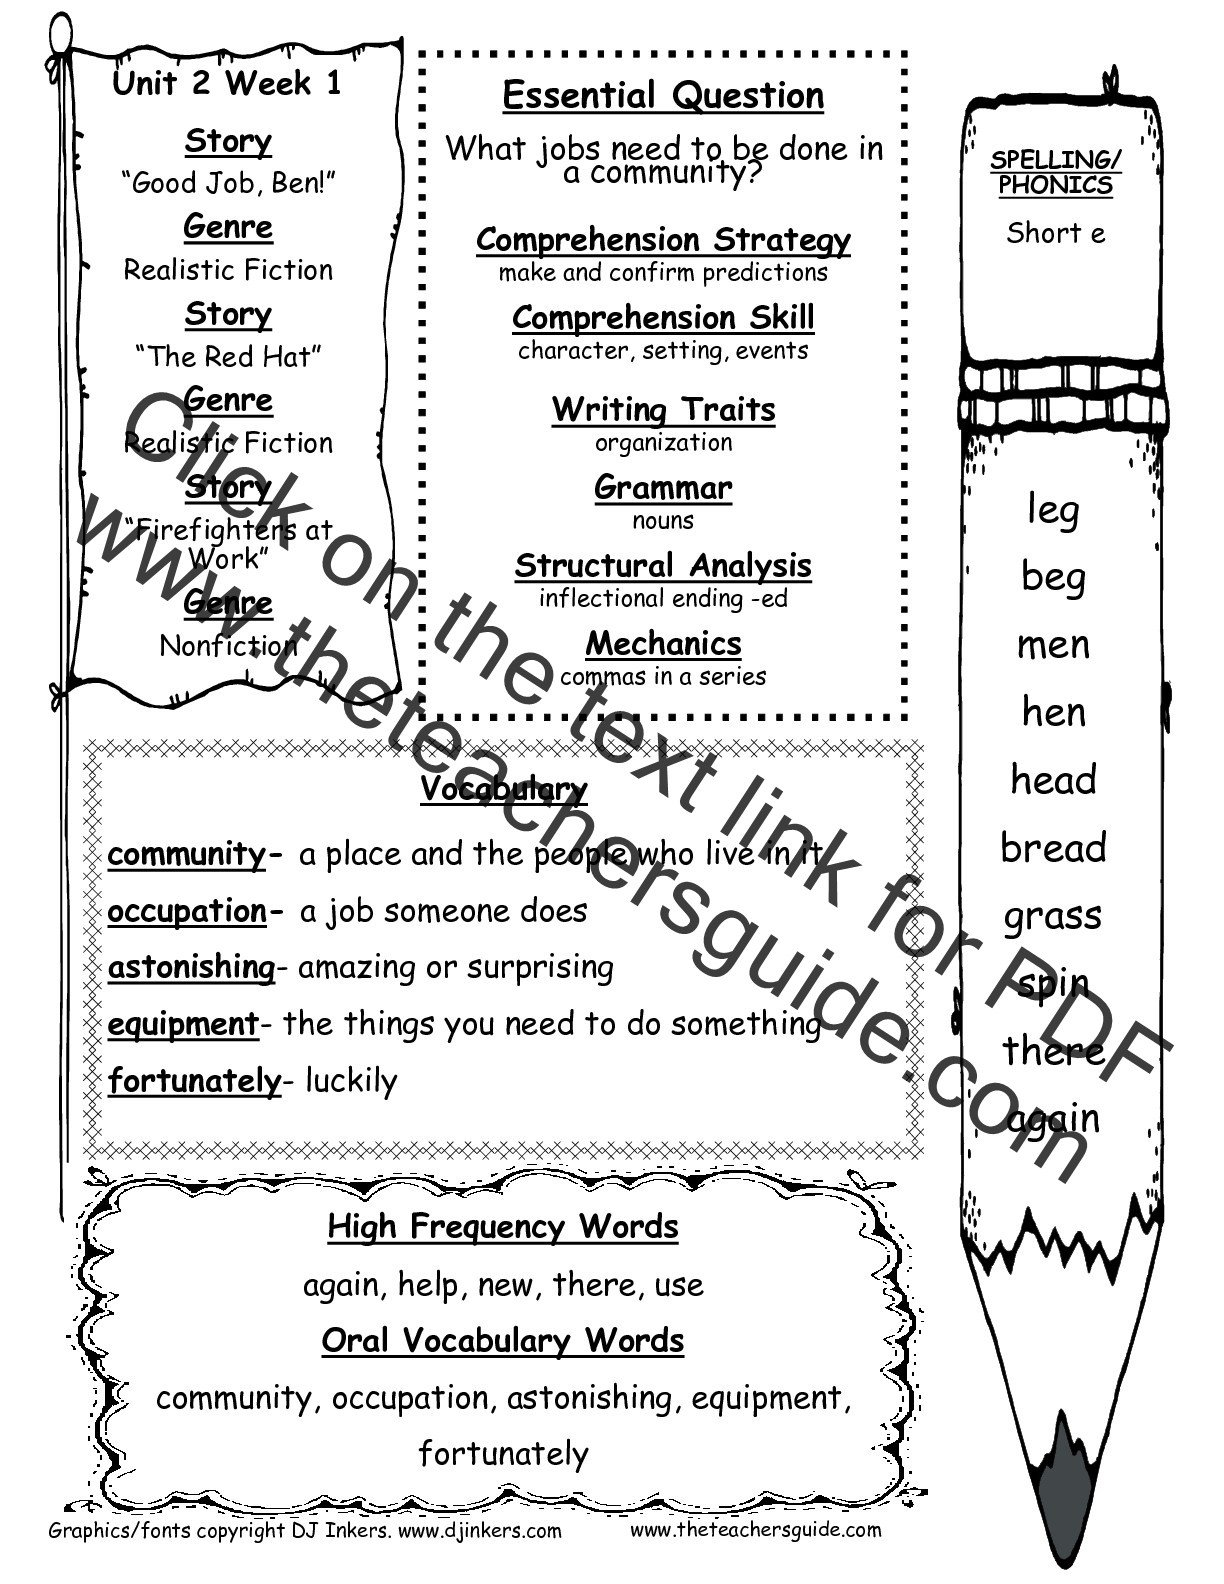 Printable First Grade Reading Worksheets Unittwoweekonettg Coloring Book Free Reading Activities for